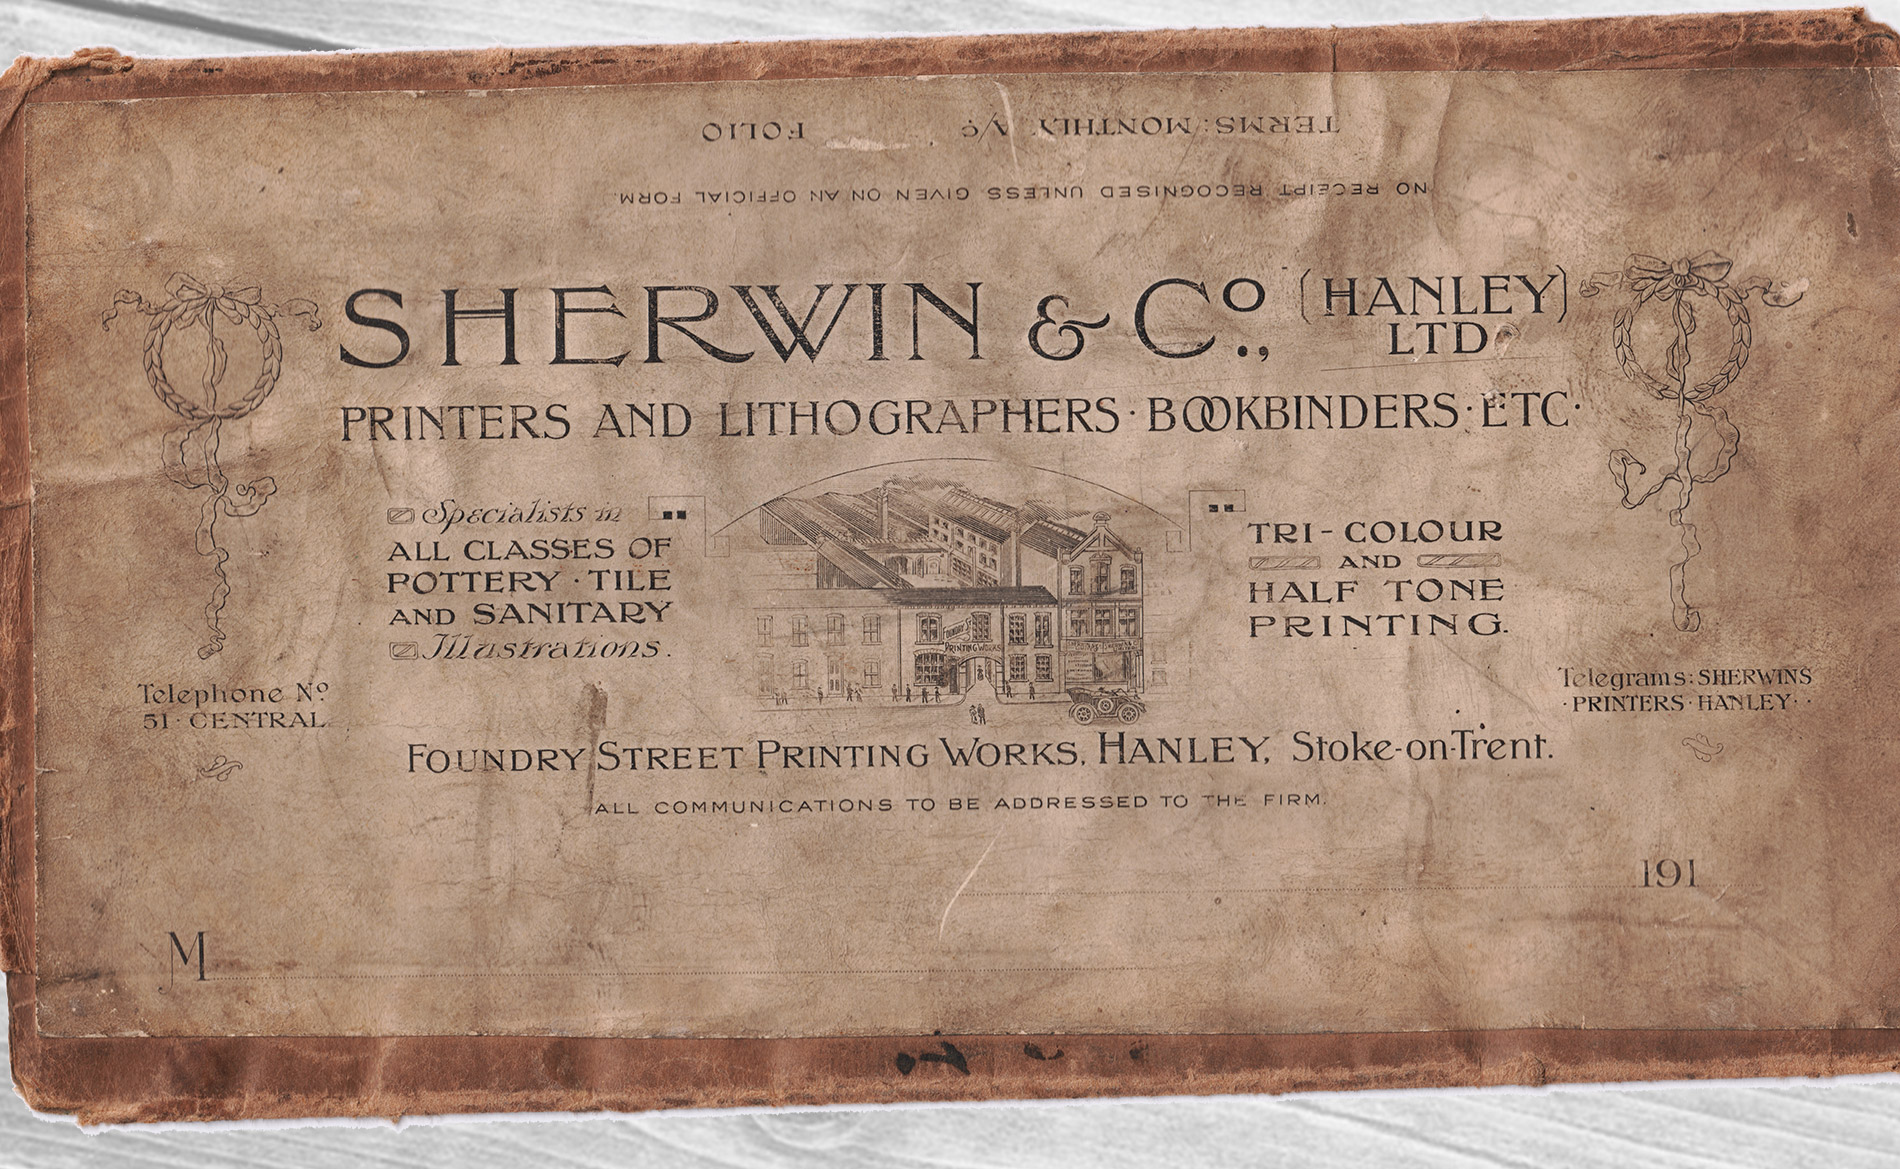 Sherwin Rivers Printers Ltd - Stoke-on-Trent, Staffordshire, Family run printing company for over a century - Sherwin & Co Packaging from the turn of the 19th century